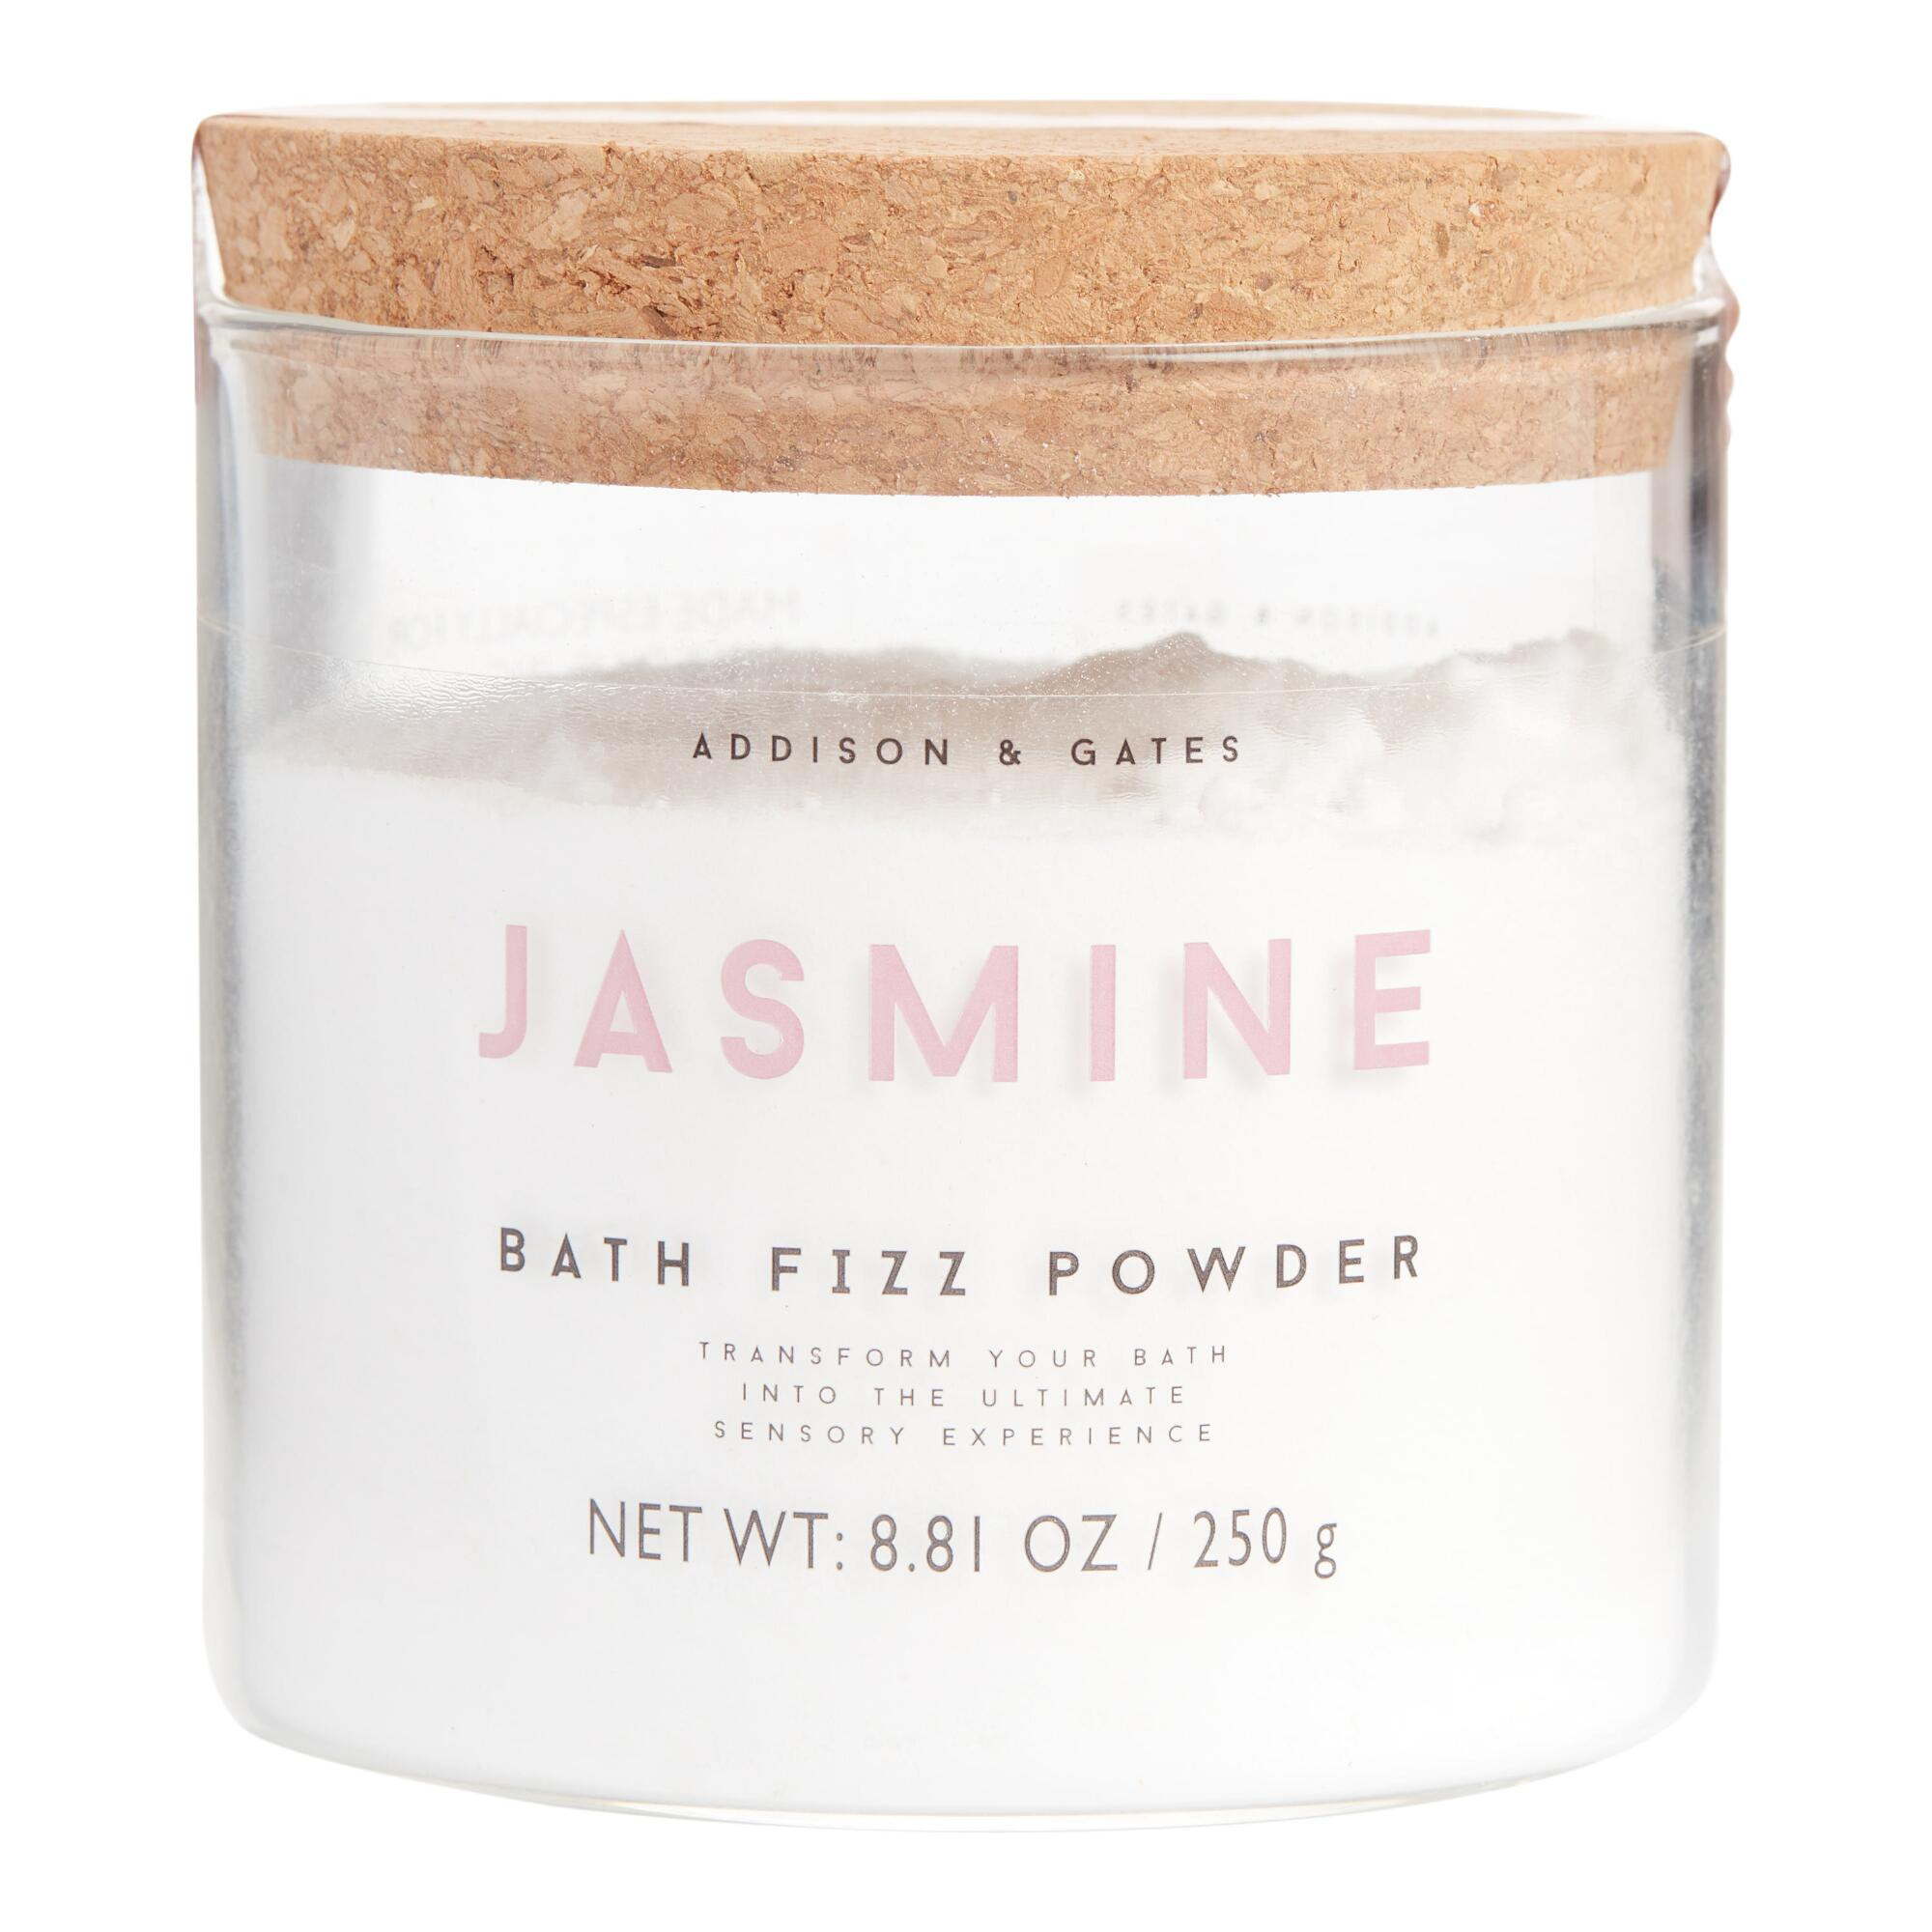 A&G Bath Fizz Powder $9.99